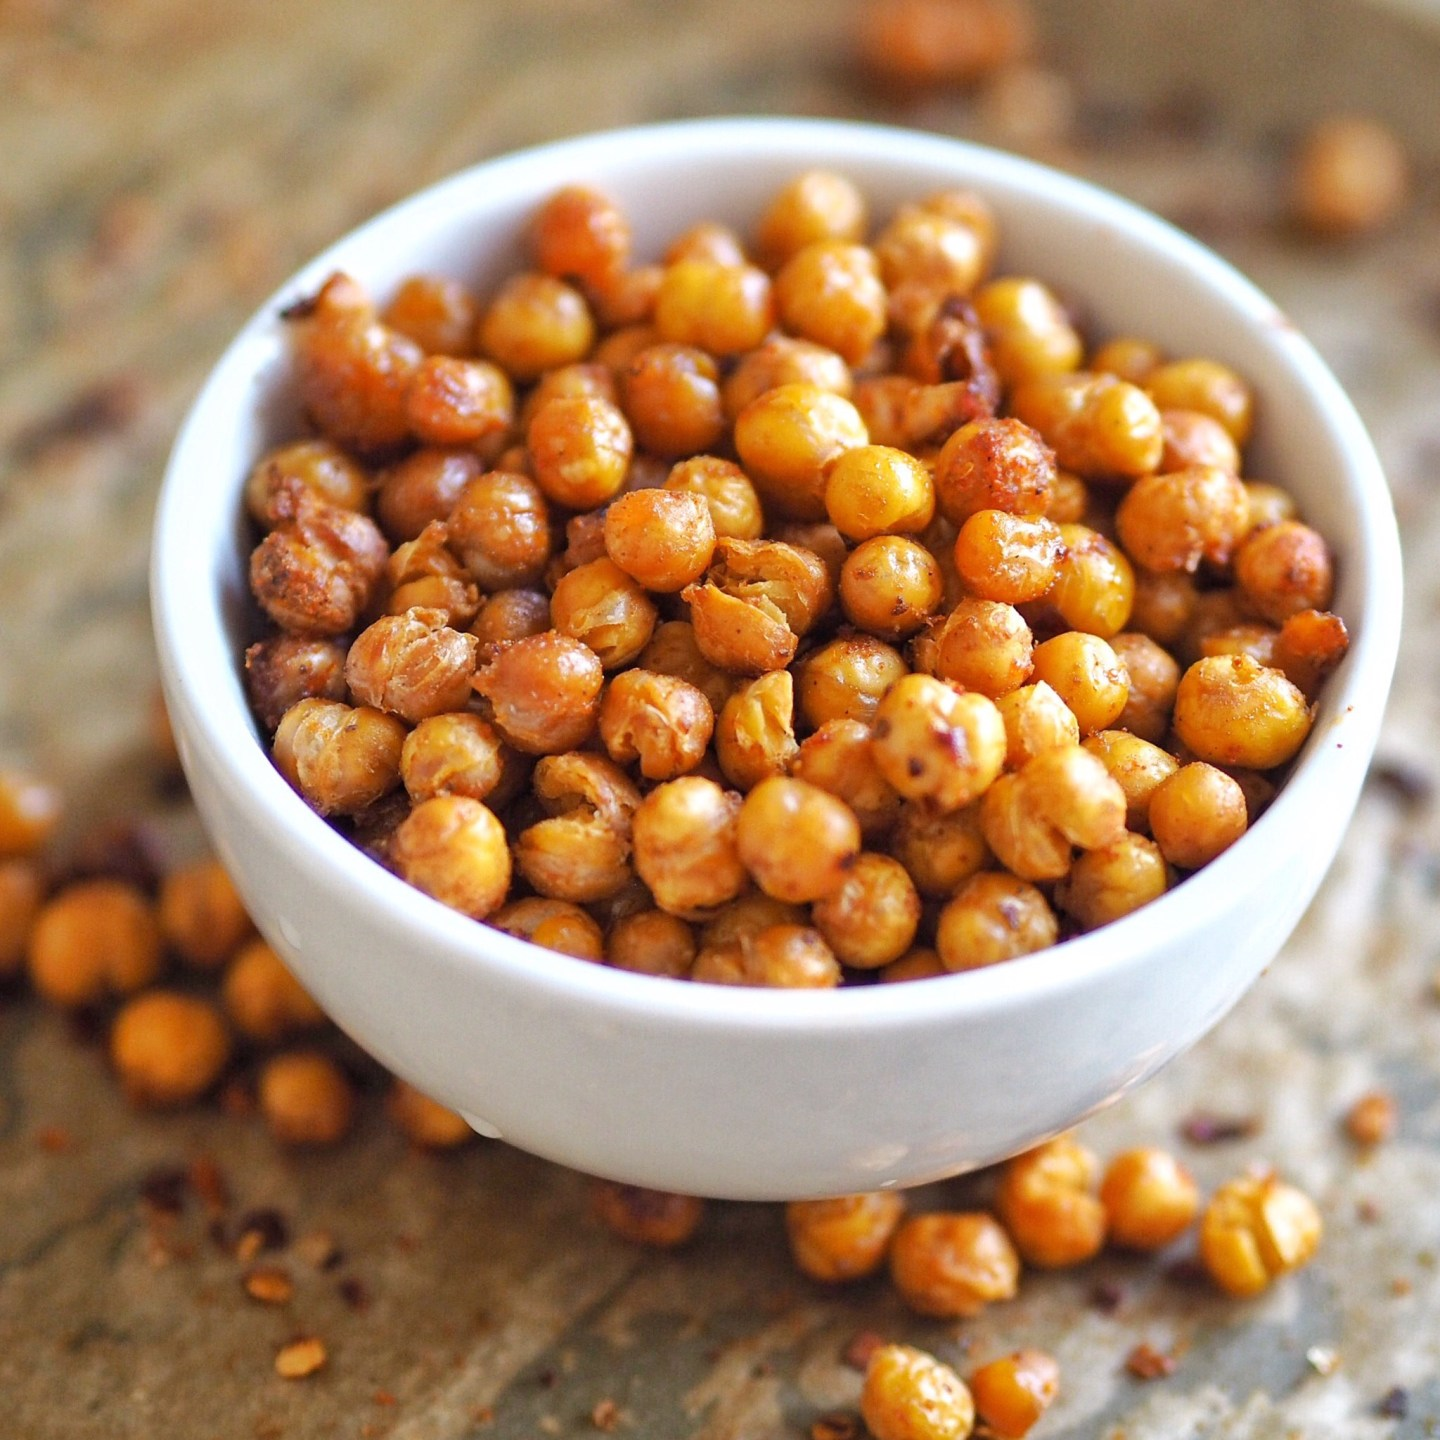 Spiced Roasted Chickpeas Recipe